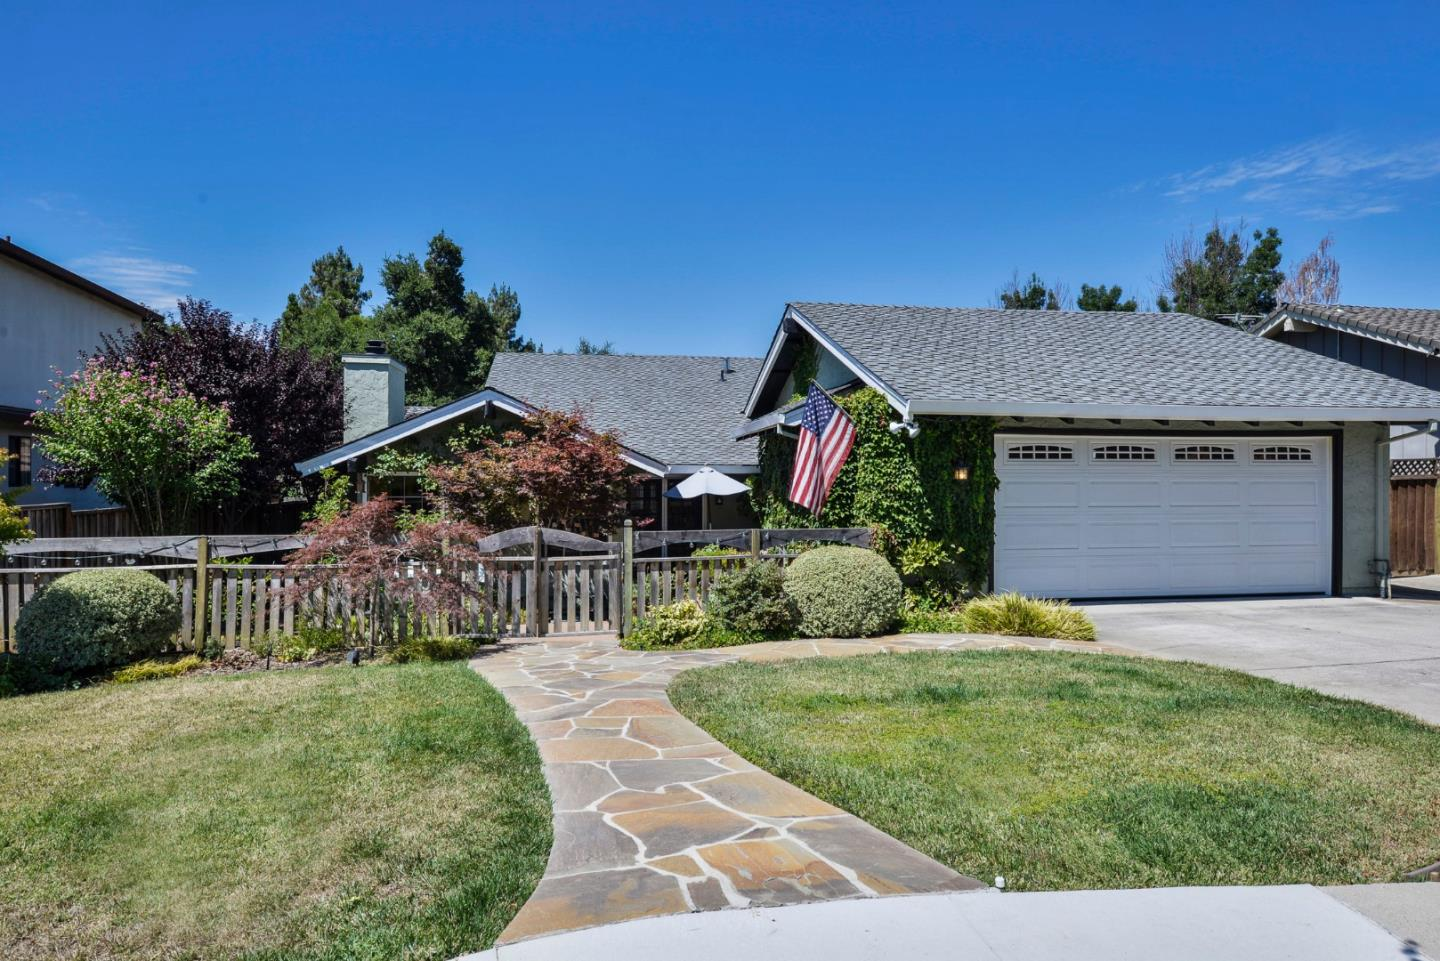 Additional photo for property listing at 369 Valley View Avenue  San Jose, Kalifornien 95127 Vereinigte Staaten